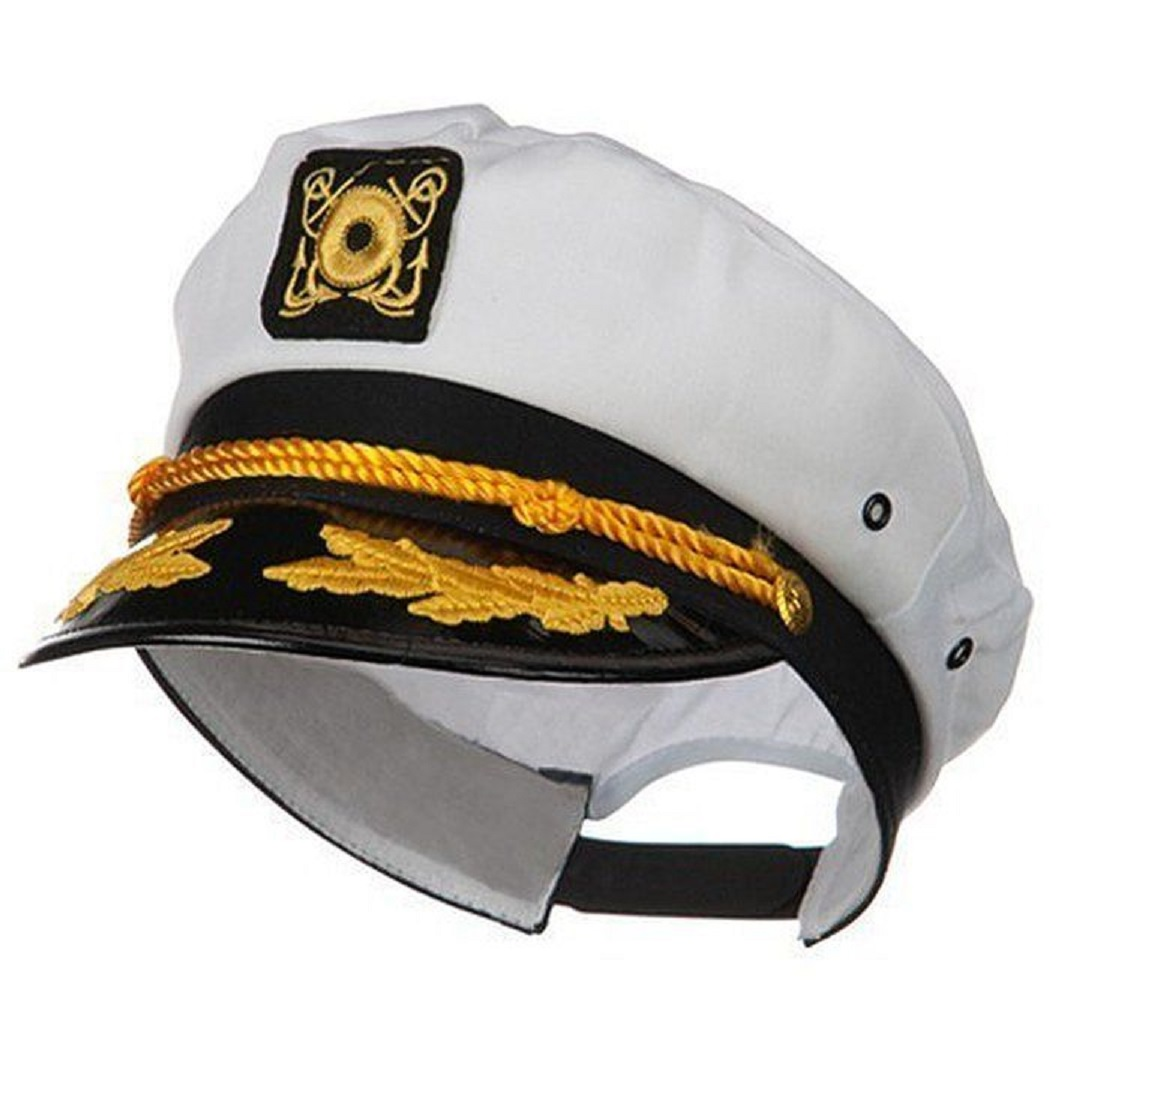 Yacht Boat Captain Hat Sailor Ship Navy Marines Admiral Cap Hat White Gold 23400